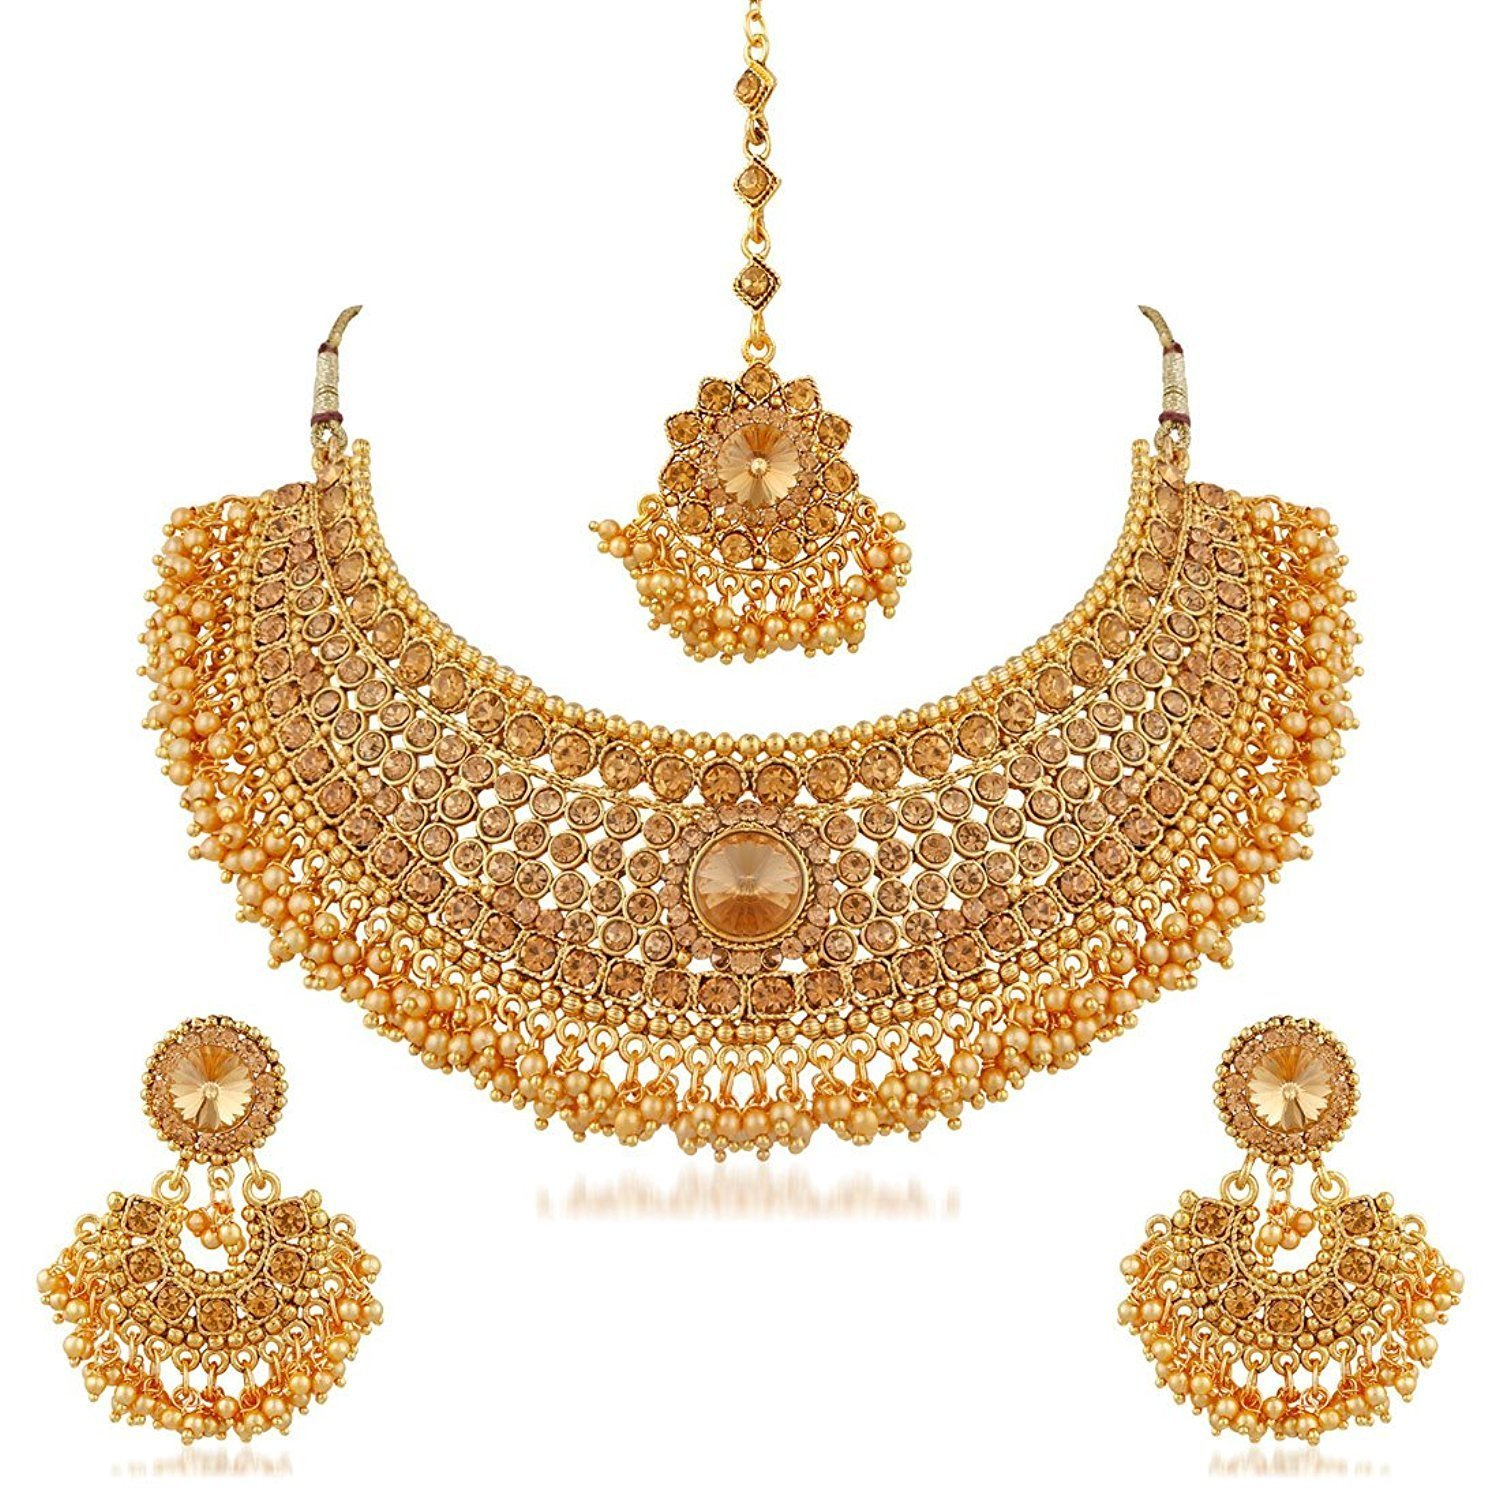 Humorous Indian Fashion Jewelry Necklace Gold Plated Bollywood Wedding Earrings Party Set In Many Styles Bridal & Wedding Party Jewelry Jewelry & Watches